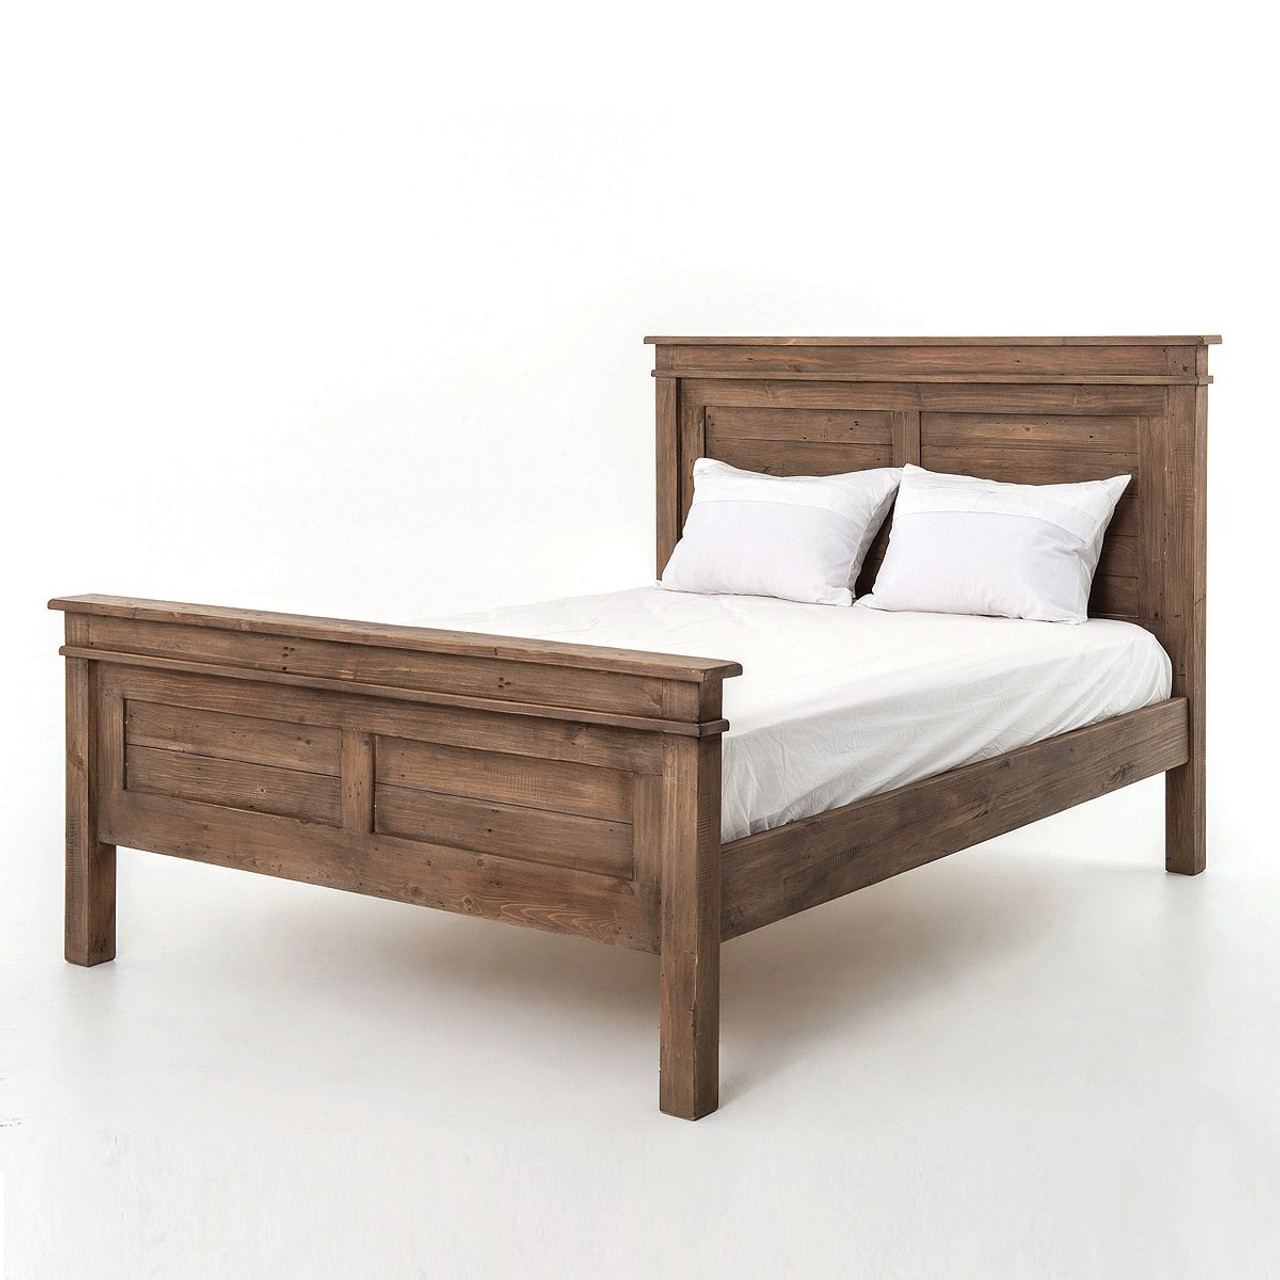 Sierra reclaimed wood king size platform bed zin home Platform king bed